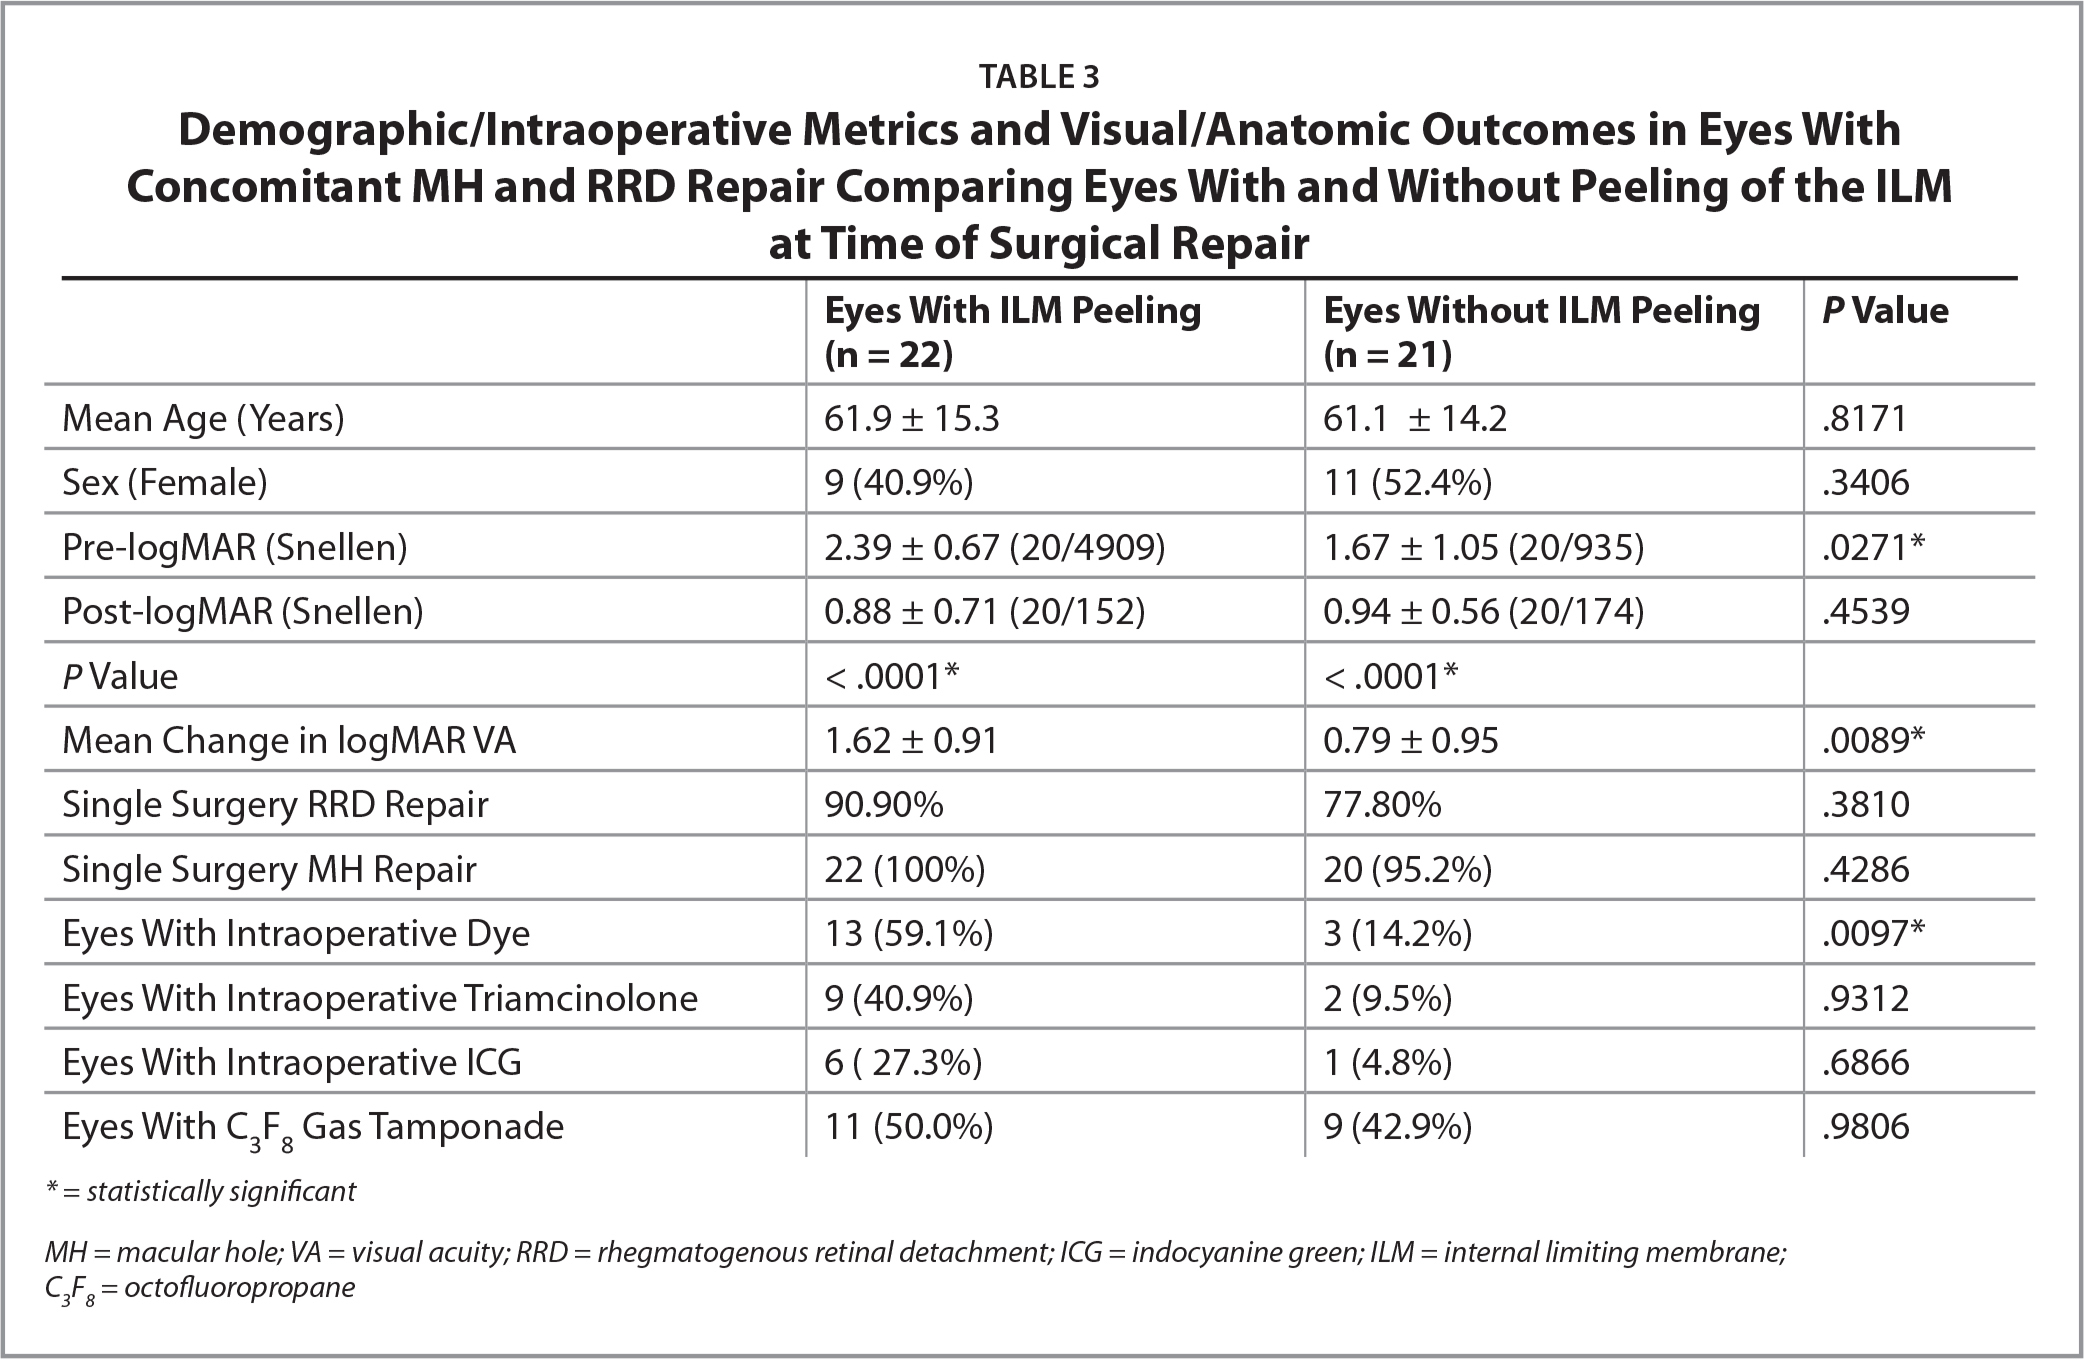 Demographic/Intraoperative Metrics and Visual/Anatomic Outcomes in Eyes With Concomitant MH and RRD Repair Comparing Eyes With and Without Peeling of the ILM at Time of Surgical Repair